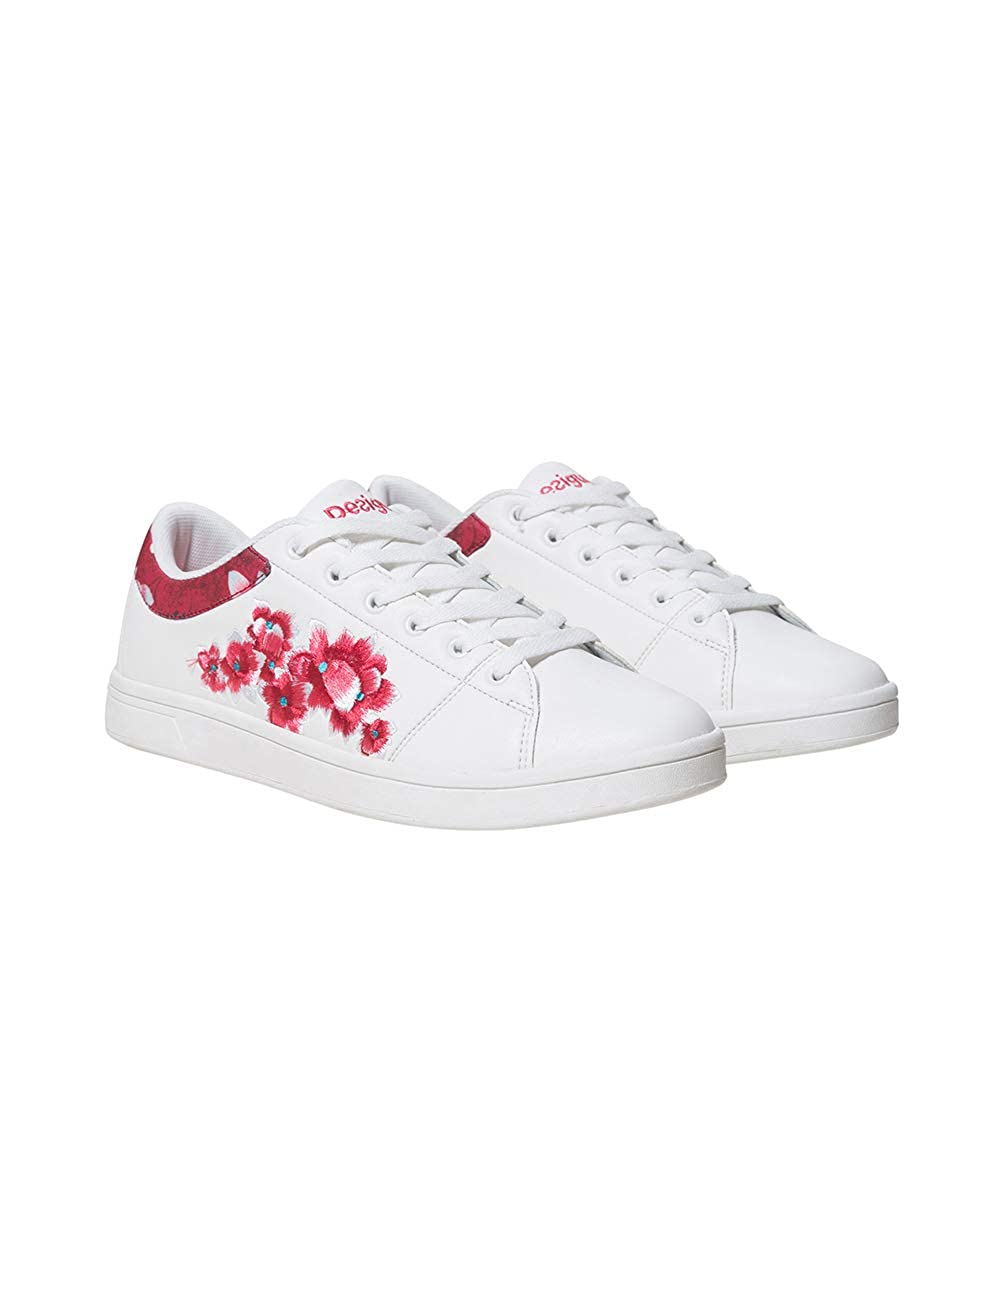 Desigual Damen Damen Damen schuhe (Tennis Hindi Dancer) Turnschuhe b86048